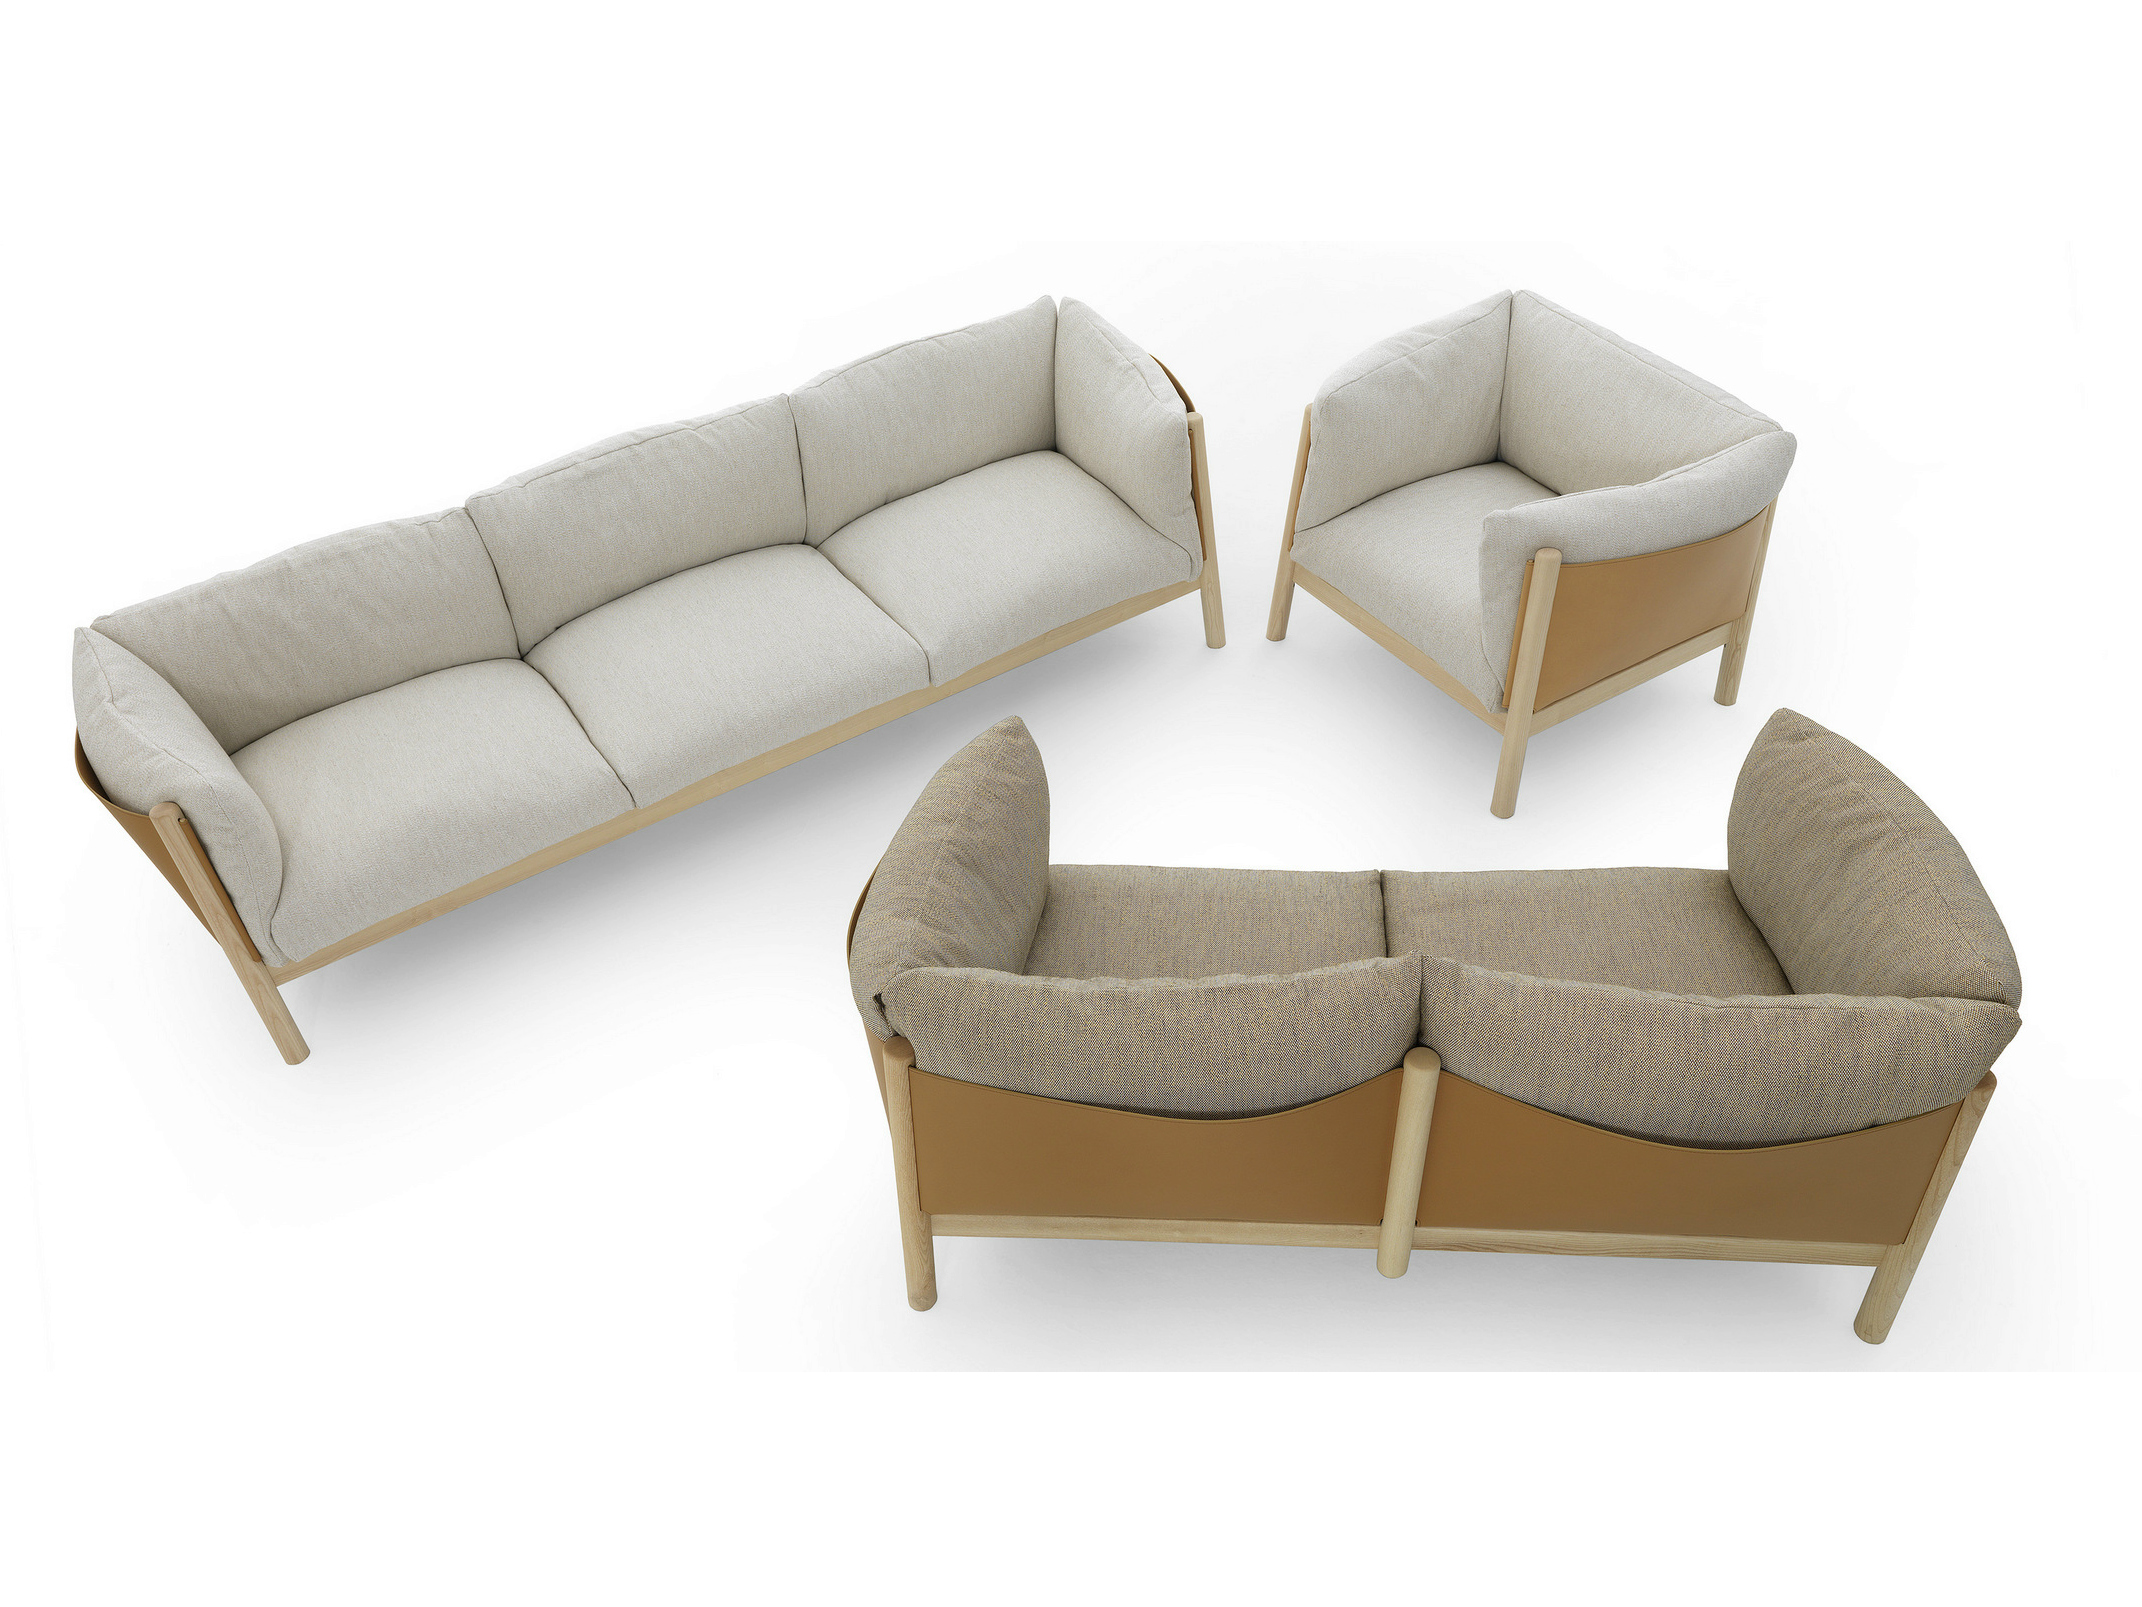 Yak Collection by LucidiPevere for De Padova